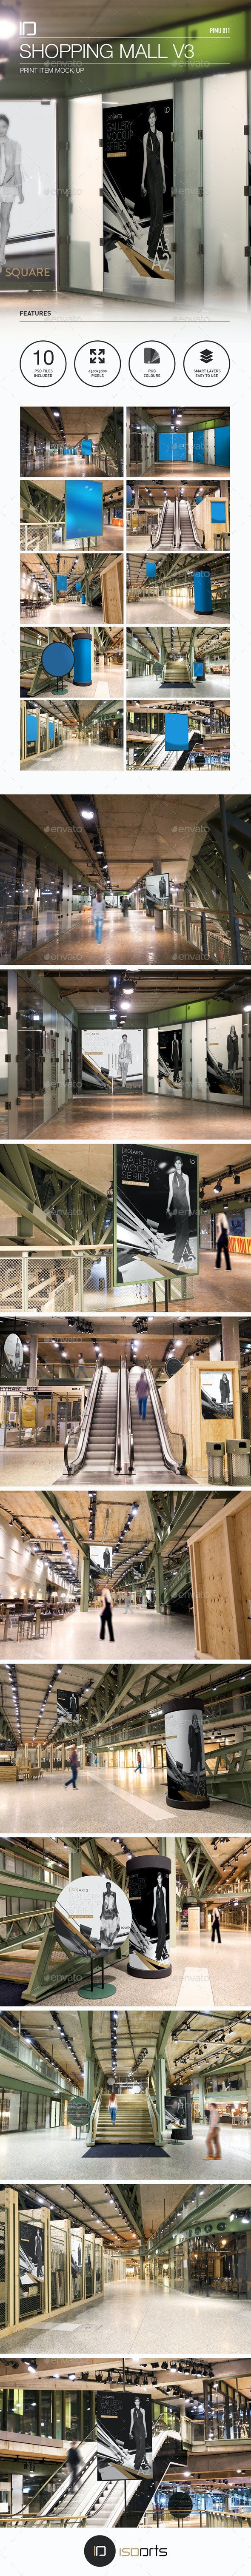 Mock-Up • Shopping Mall Gallery v3 - Posters Print